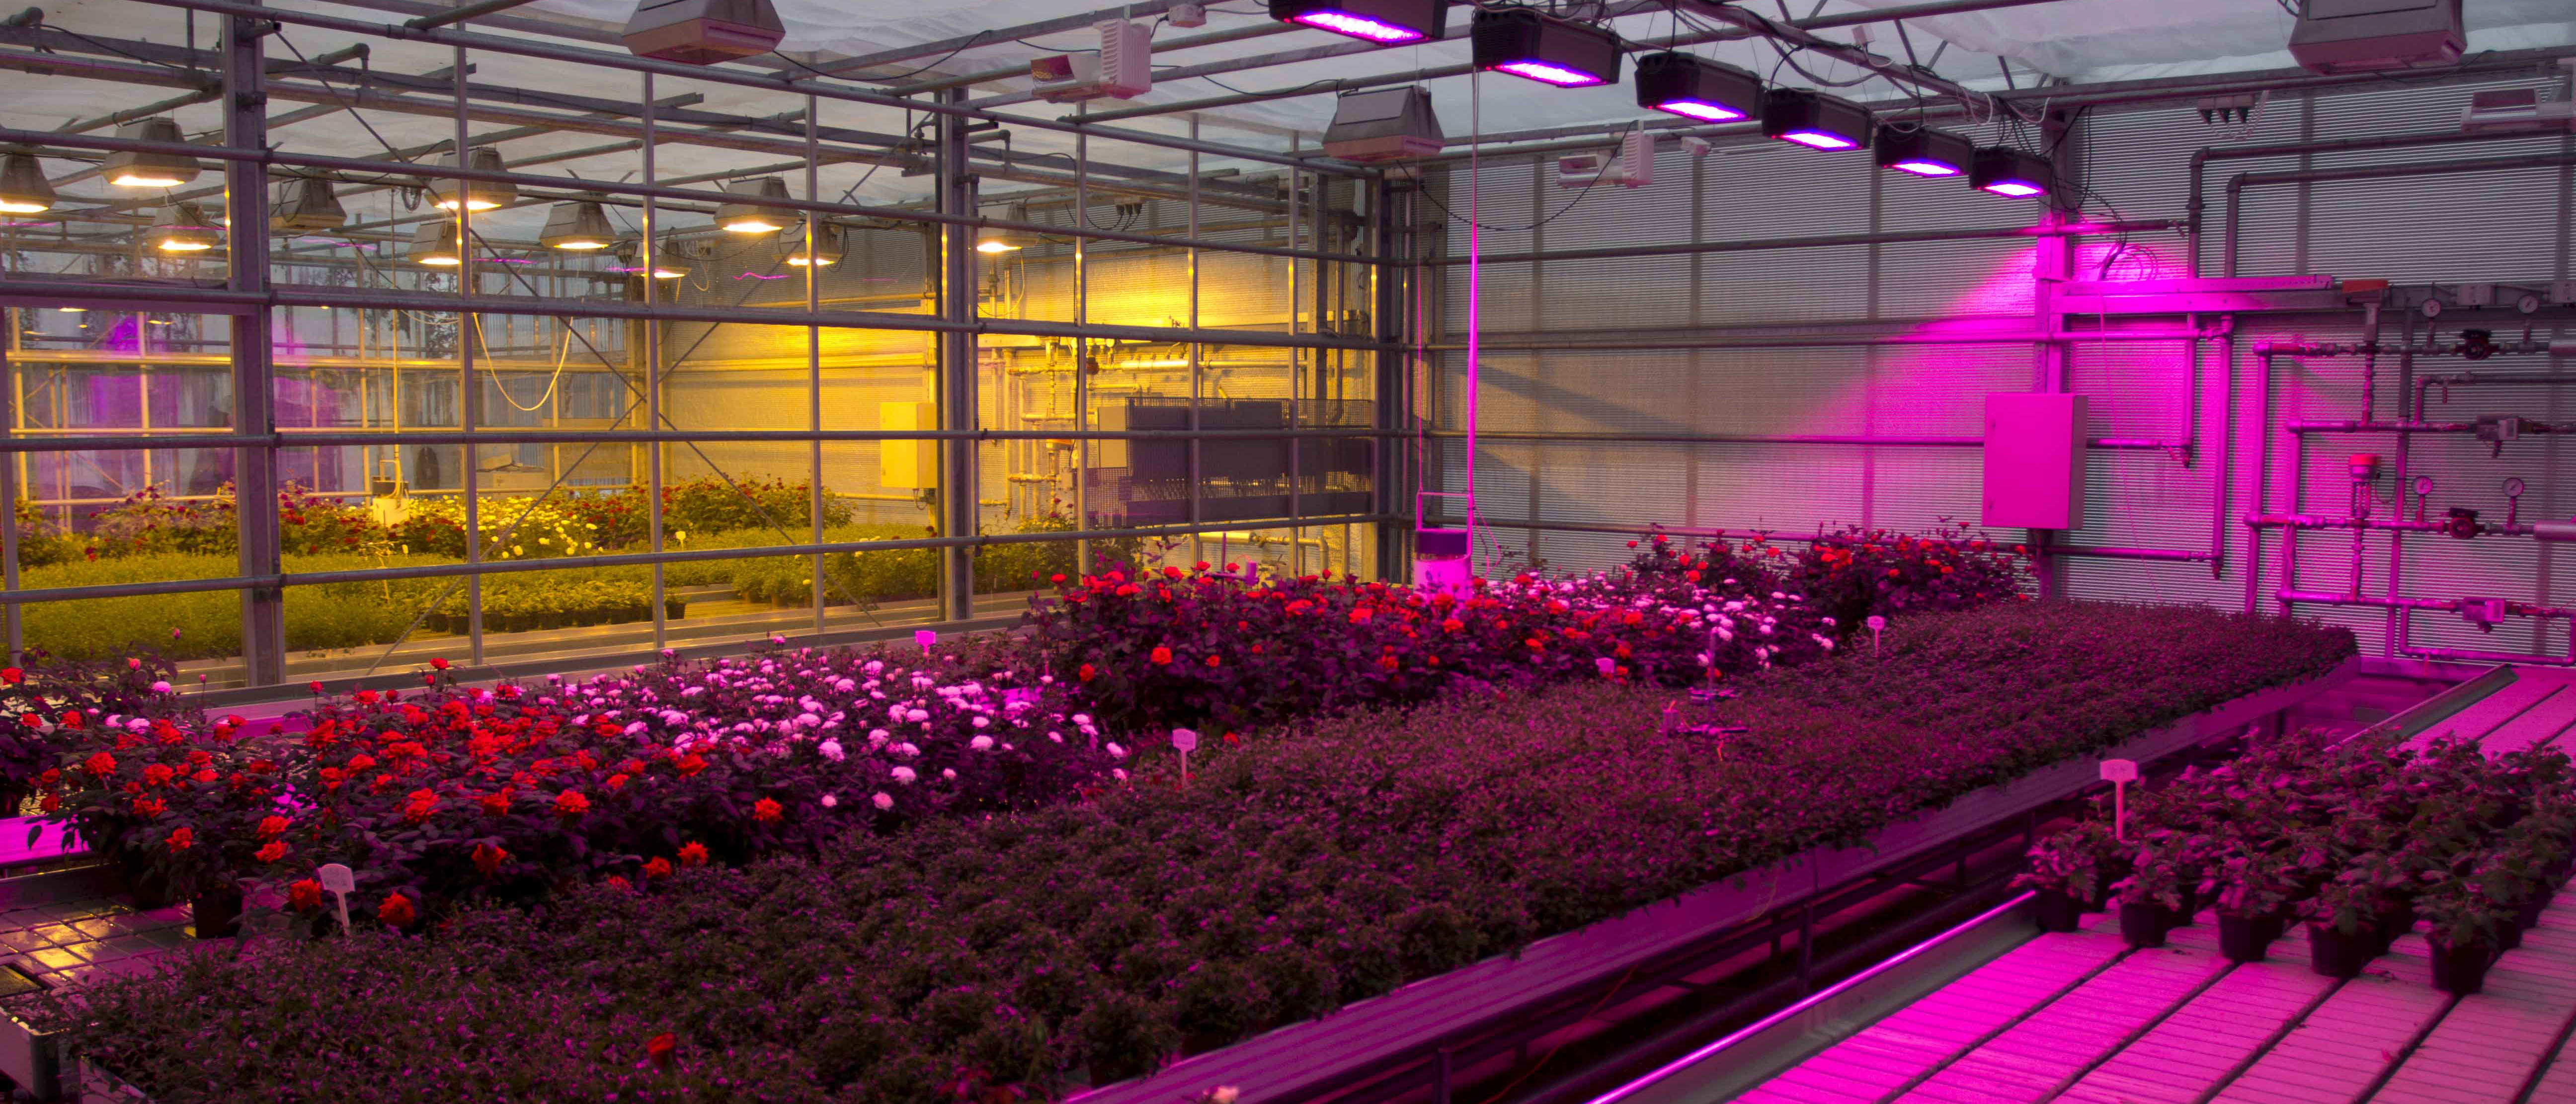 Smart Grid Ready Energy Cost Efficient Lighting System for Green House Horticulture